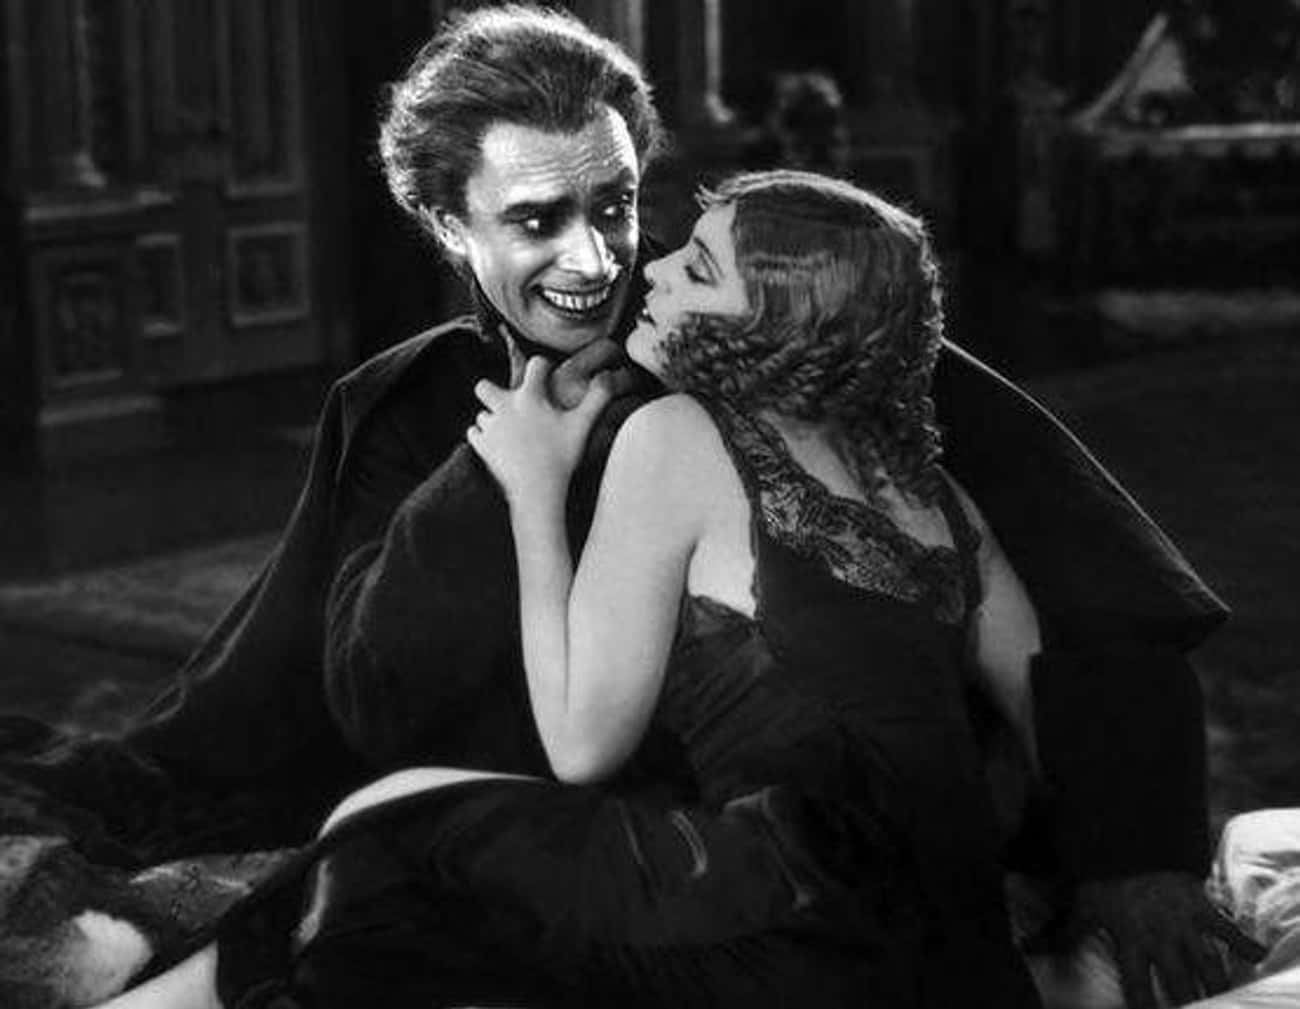 'The Man Who Laughs' Informs The Joker's Characterization